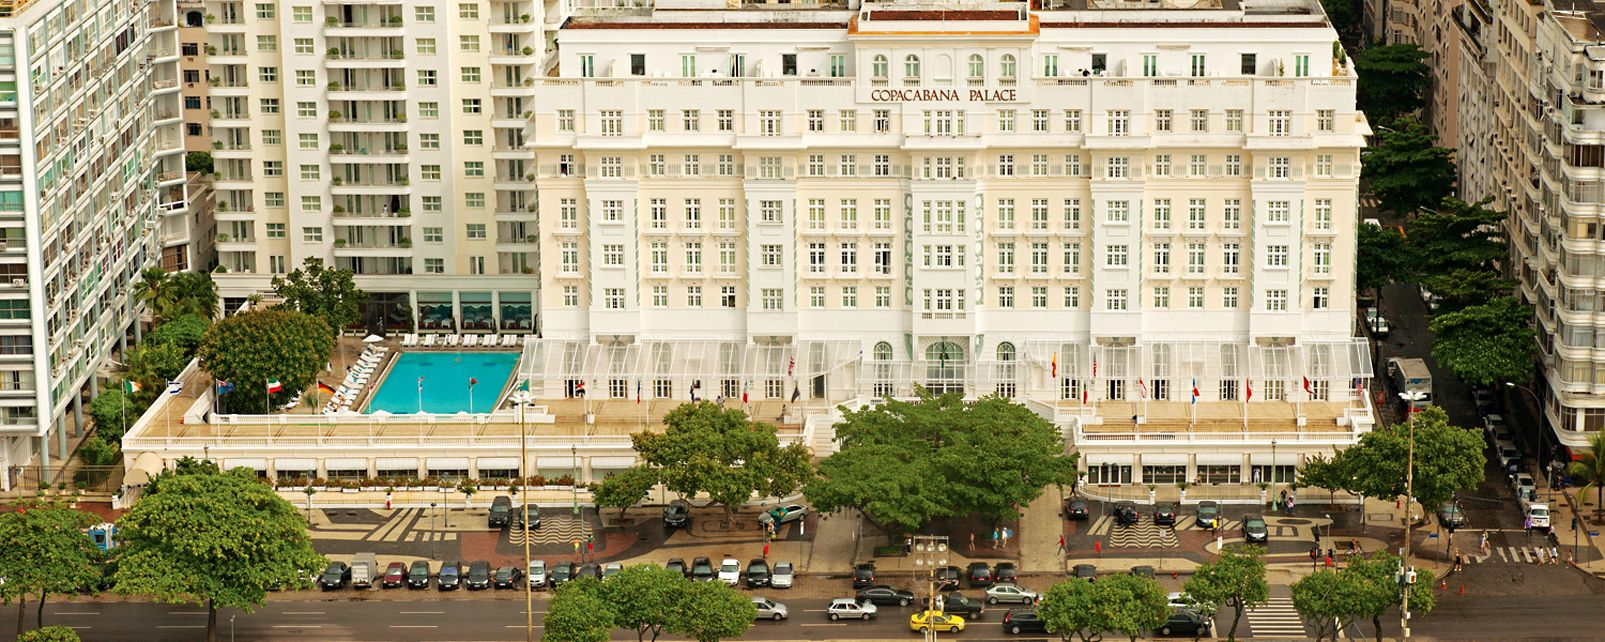 Hotel belmond copacabana palace in for Copacabana hotel